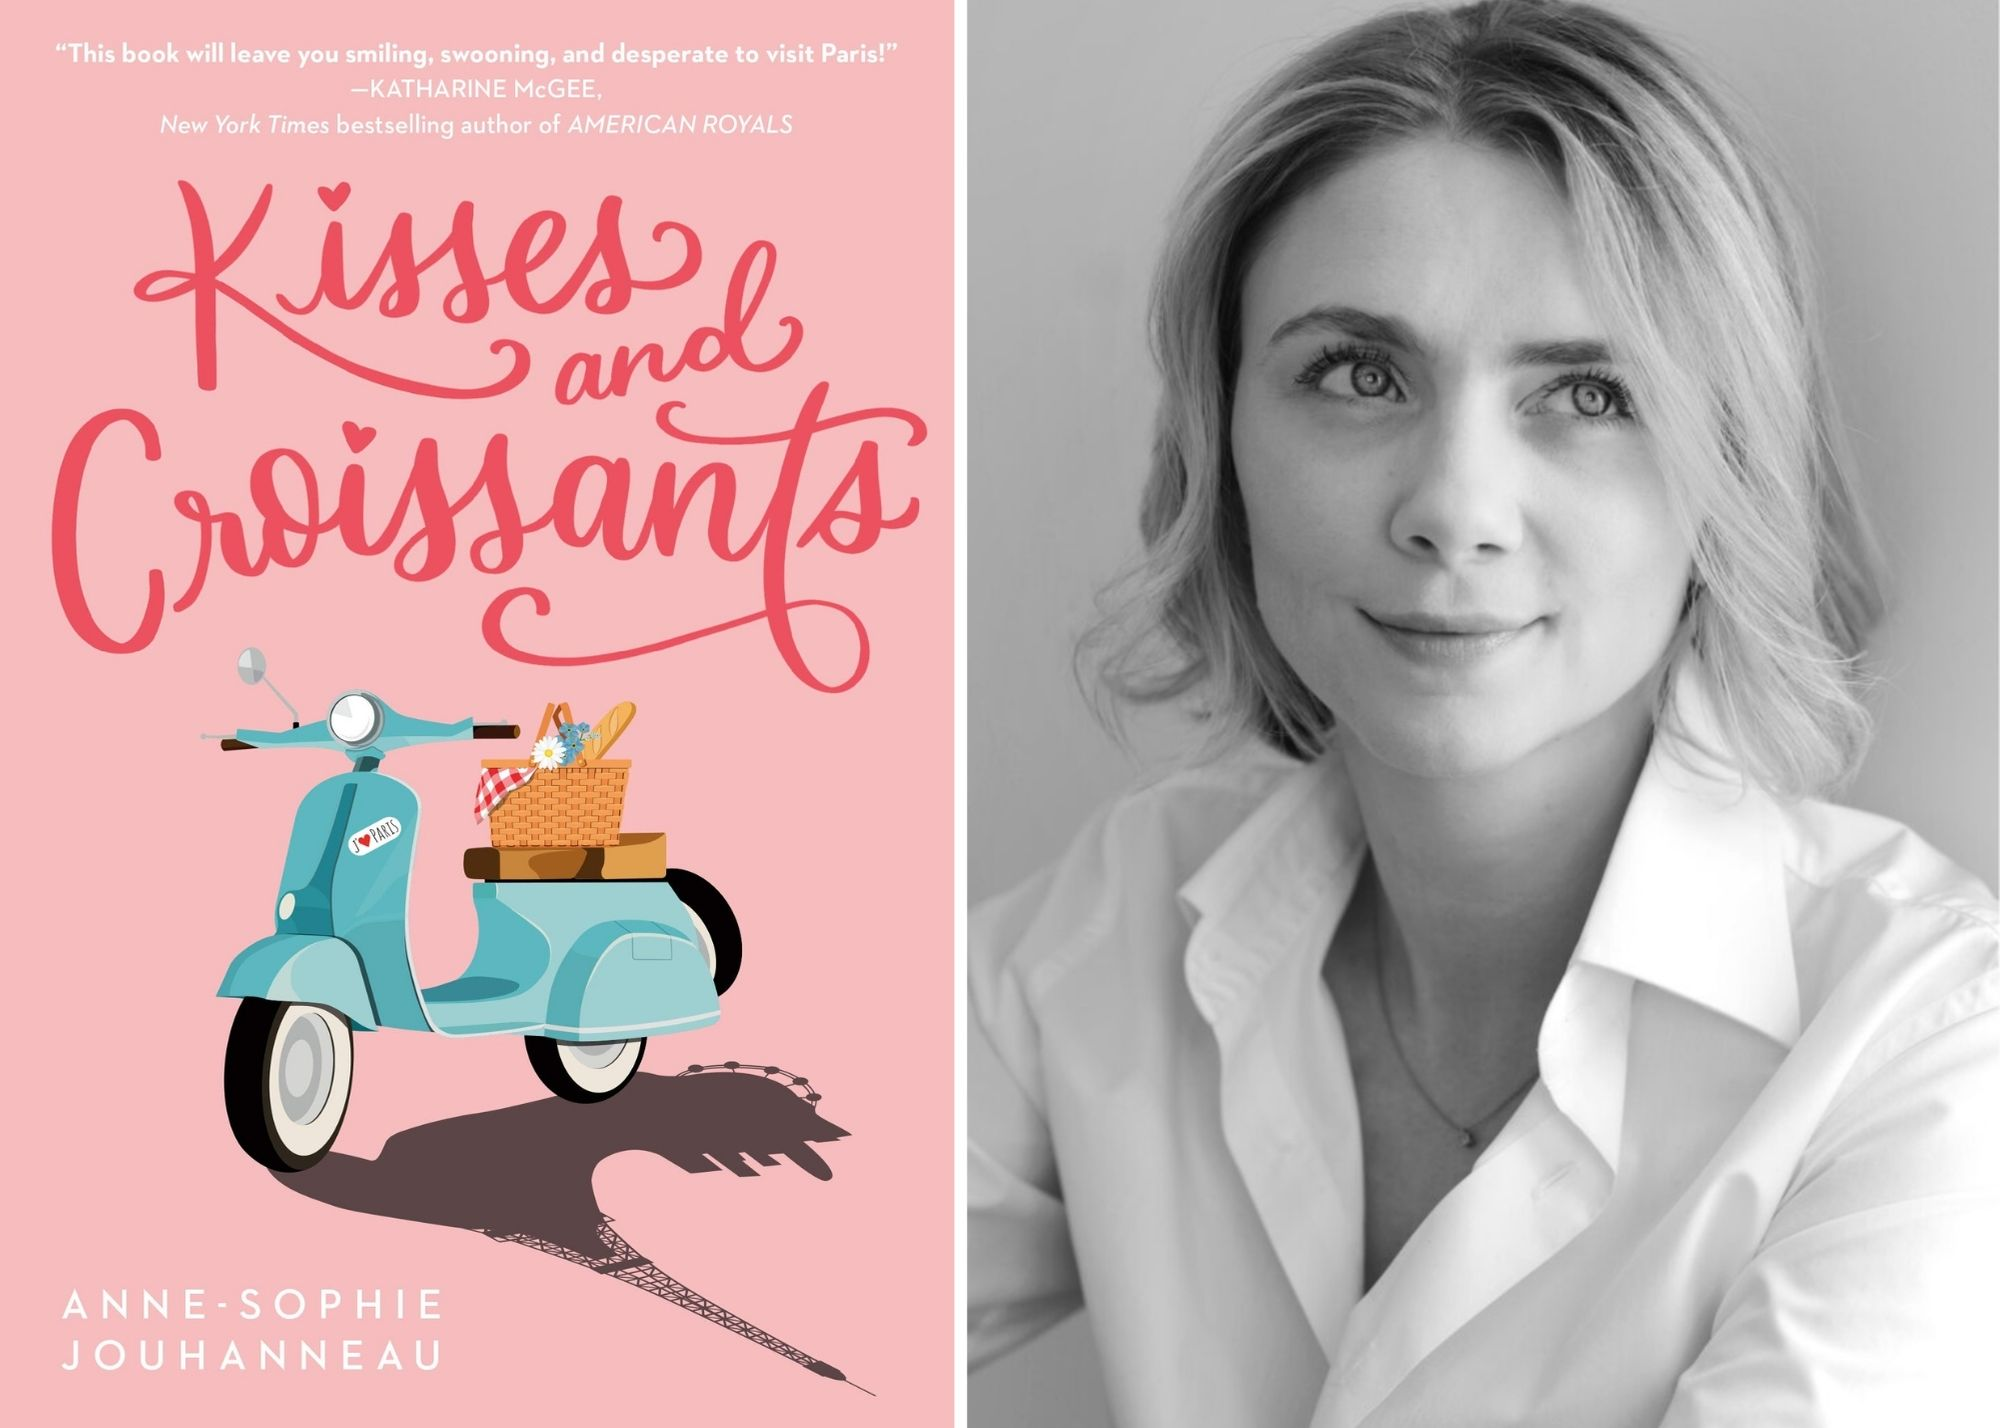 Book Review: Kisses and Croissants by Anne-Sophie Jouhanneau